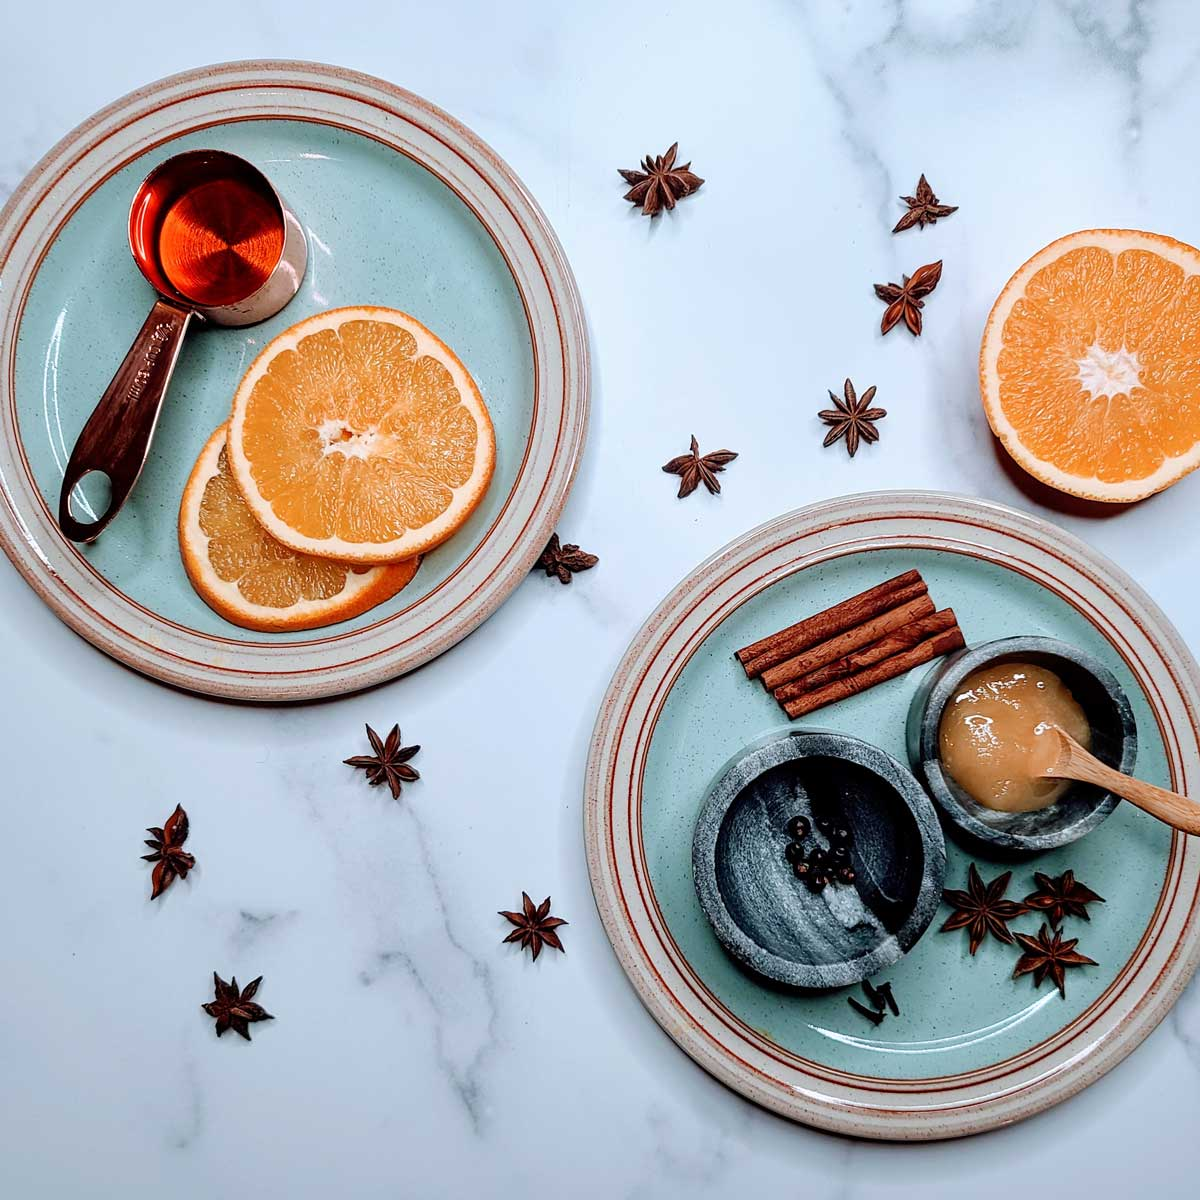 Spiced mulled wine ingredients.